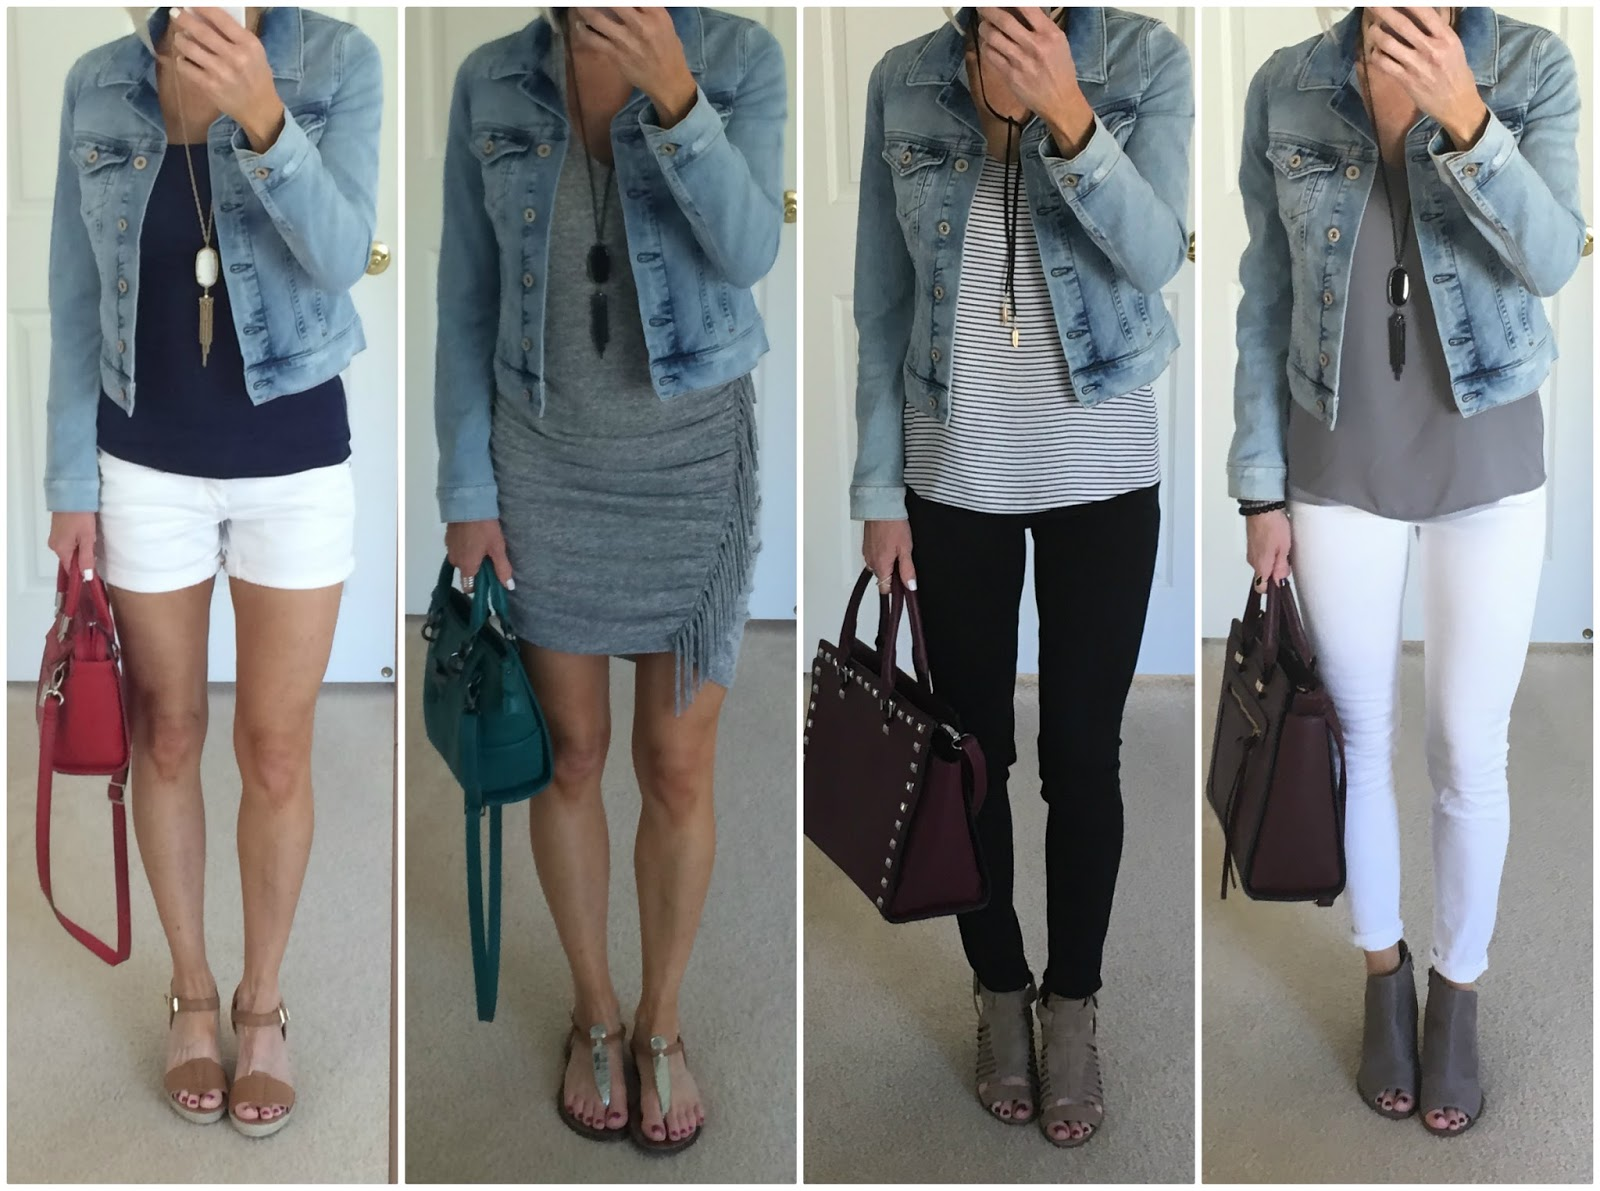 denim jacket leggings outfit on the daily express